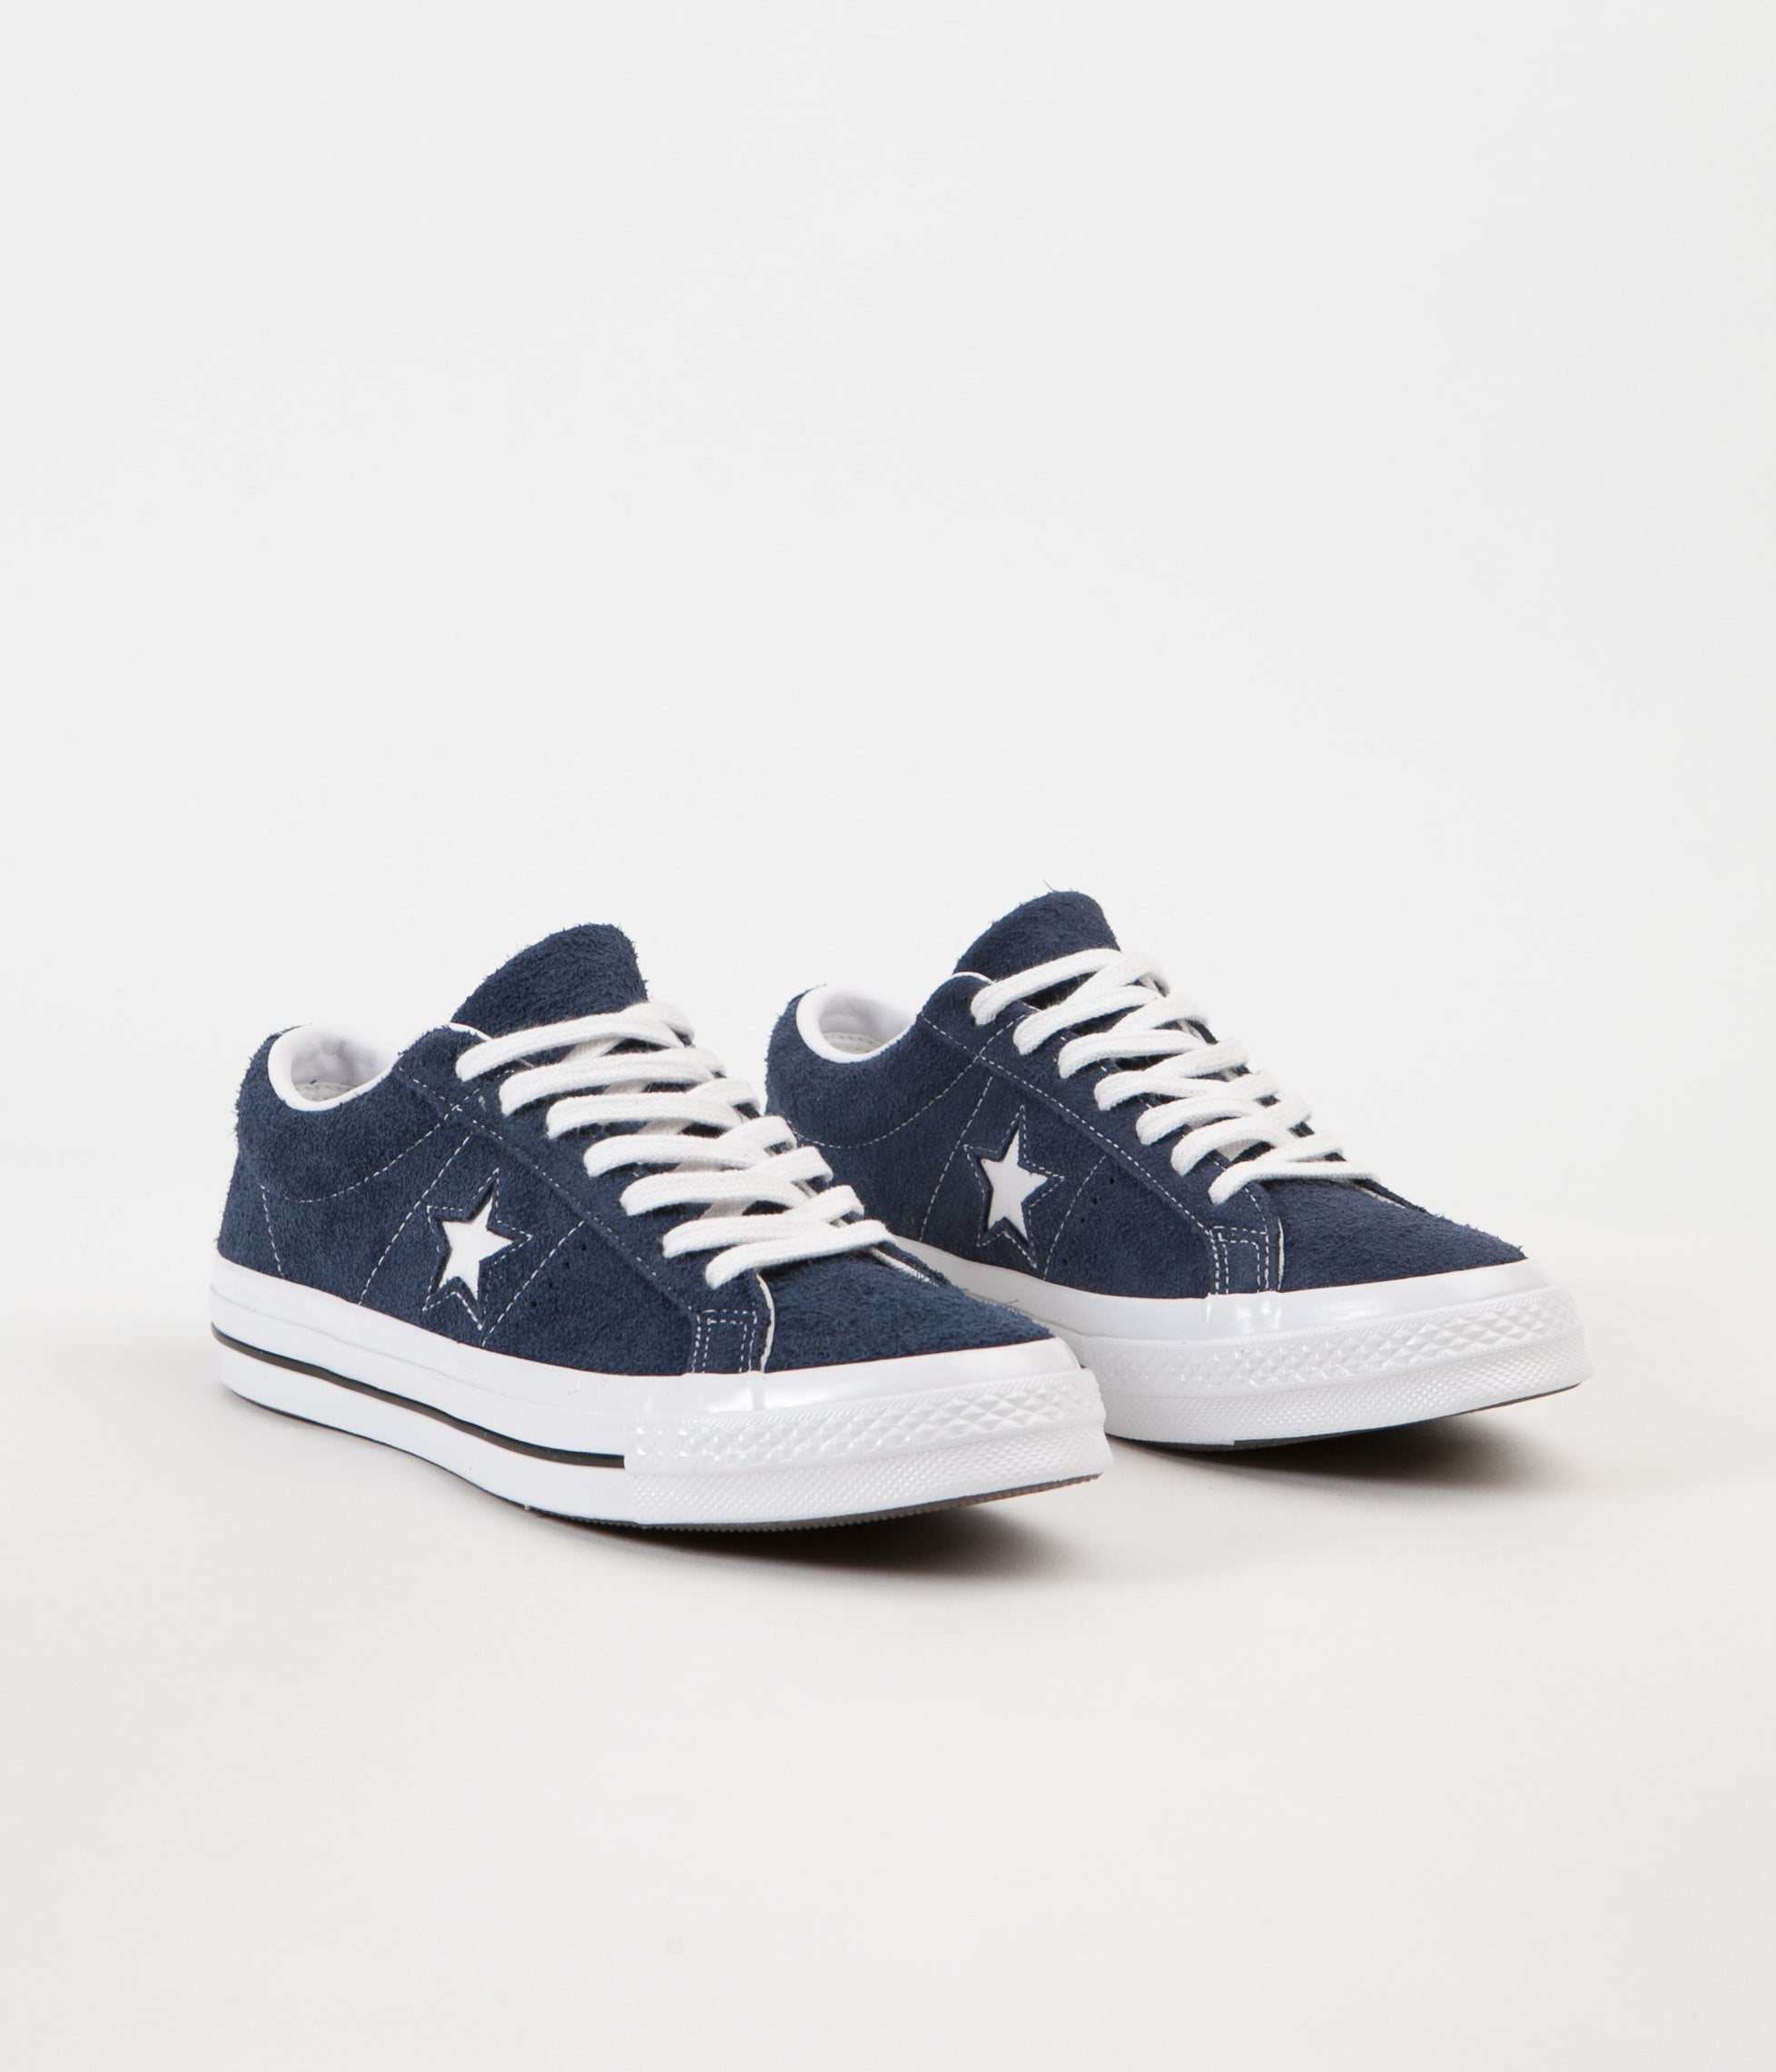 76214a207ad6 ... Converse One Star Ox Shoes - Navy   White   White ...